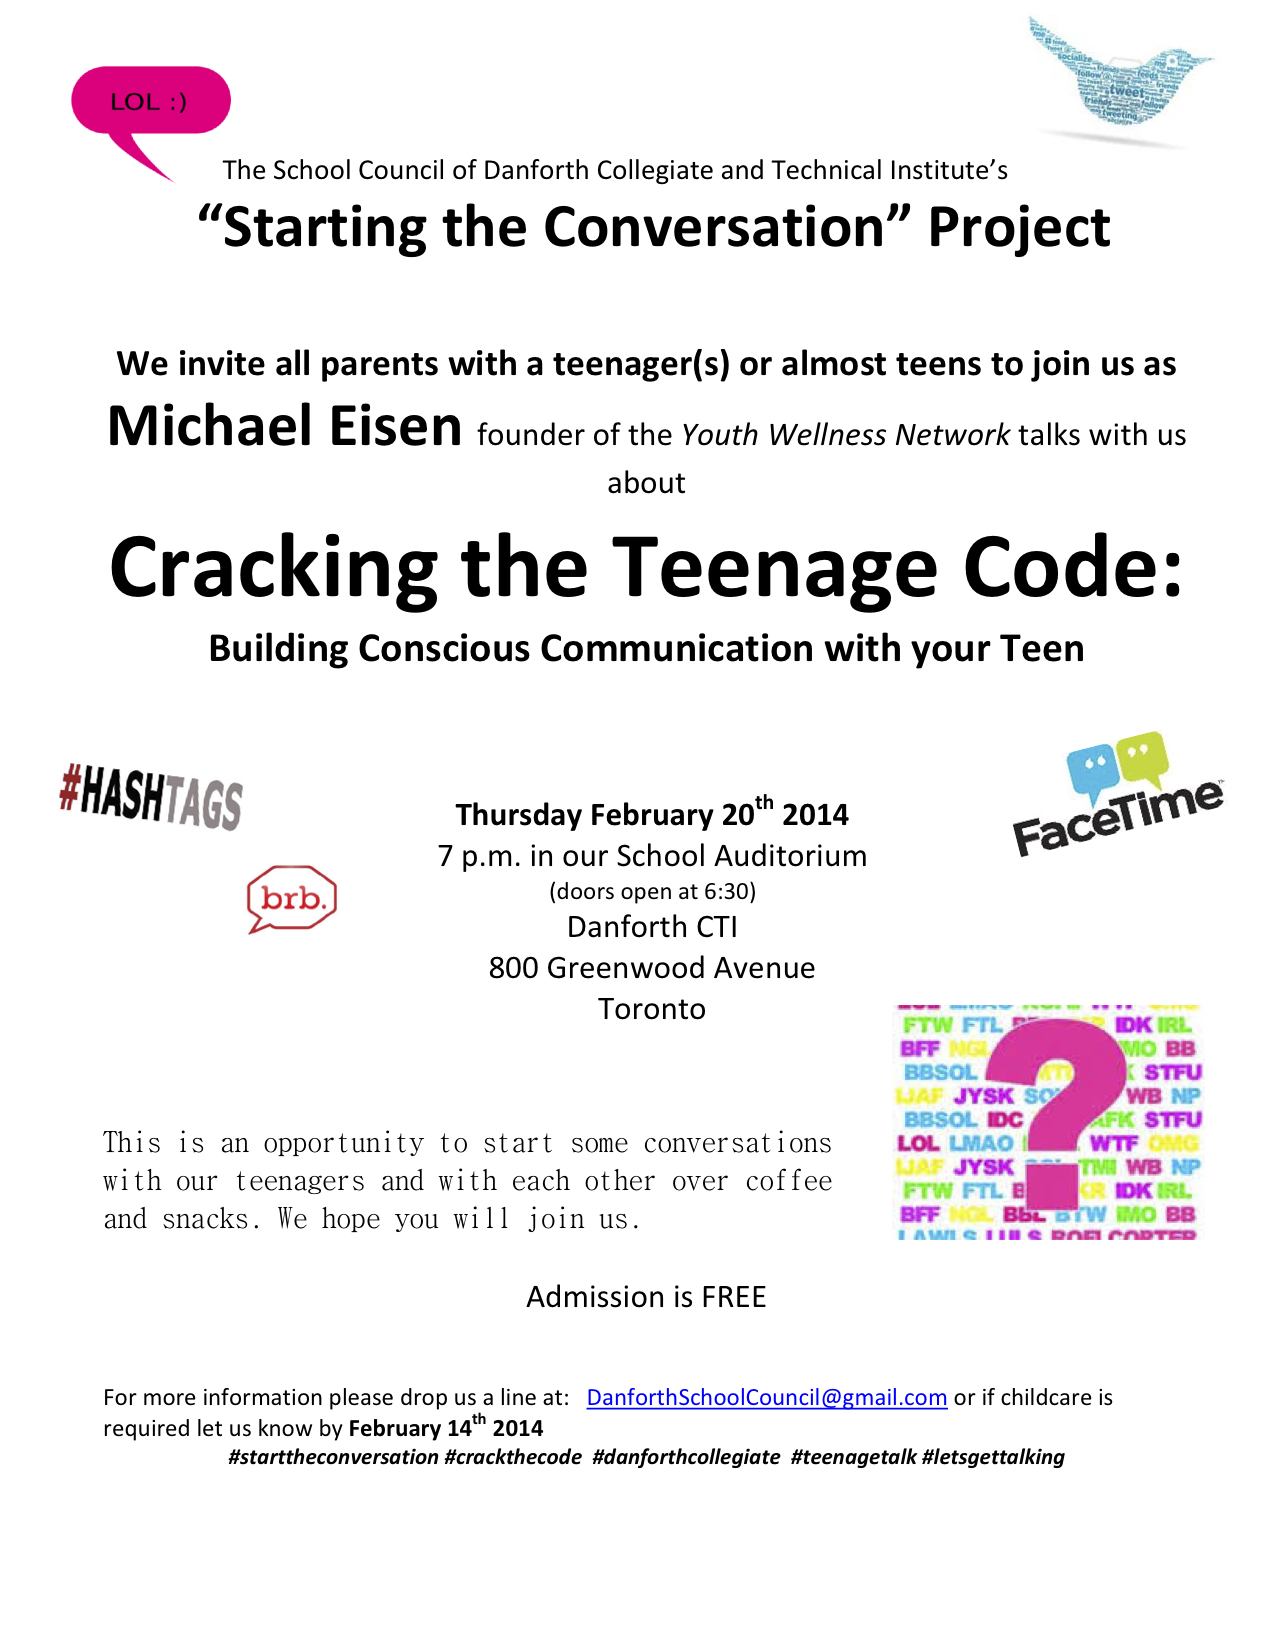 Cracking_the_Teenage_Code_Feb_20_2014_event